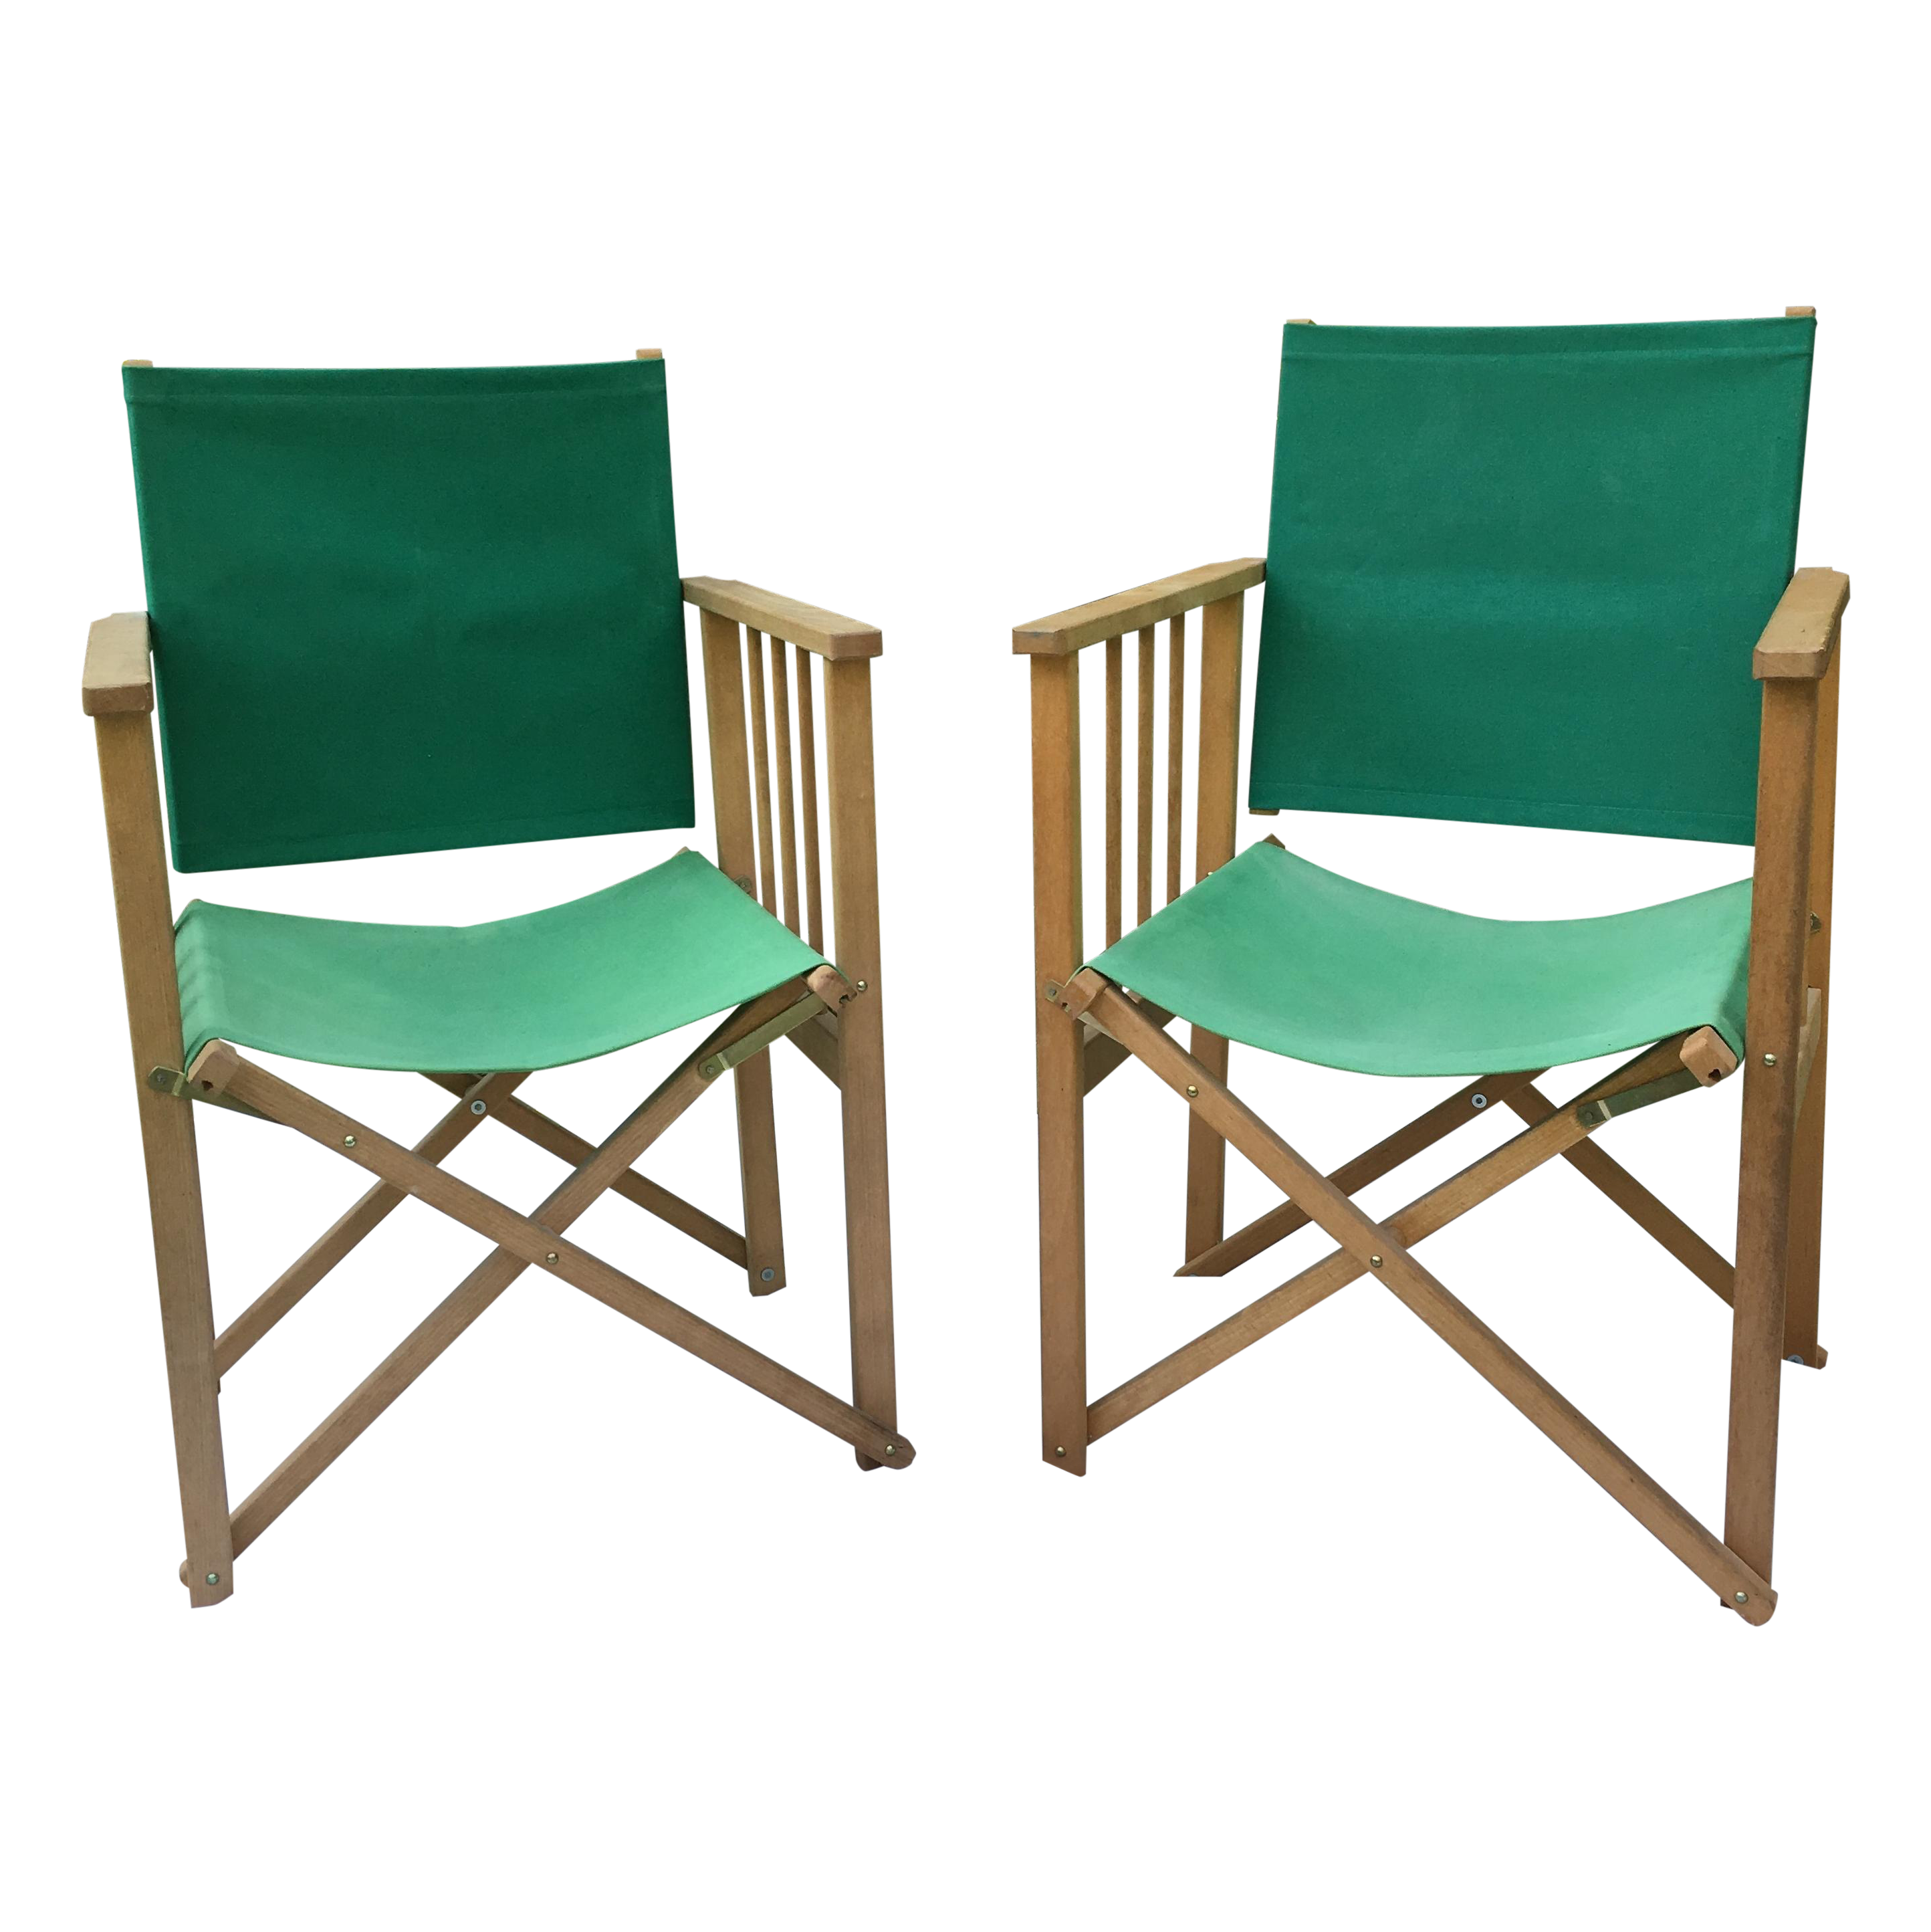 Directors chair png - Directors Chair Png 31